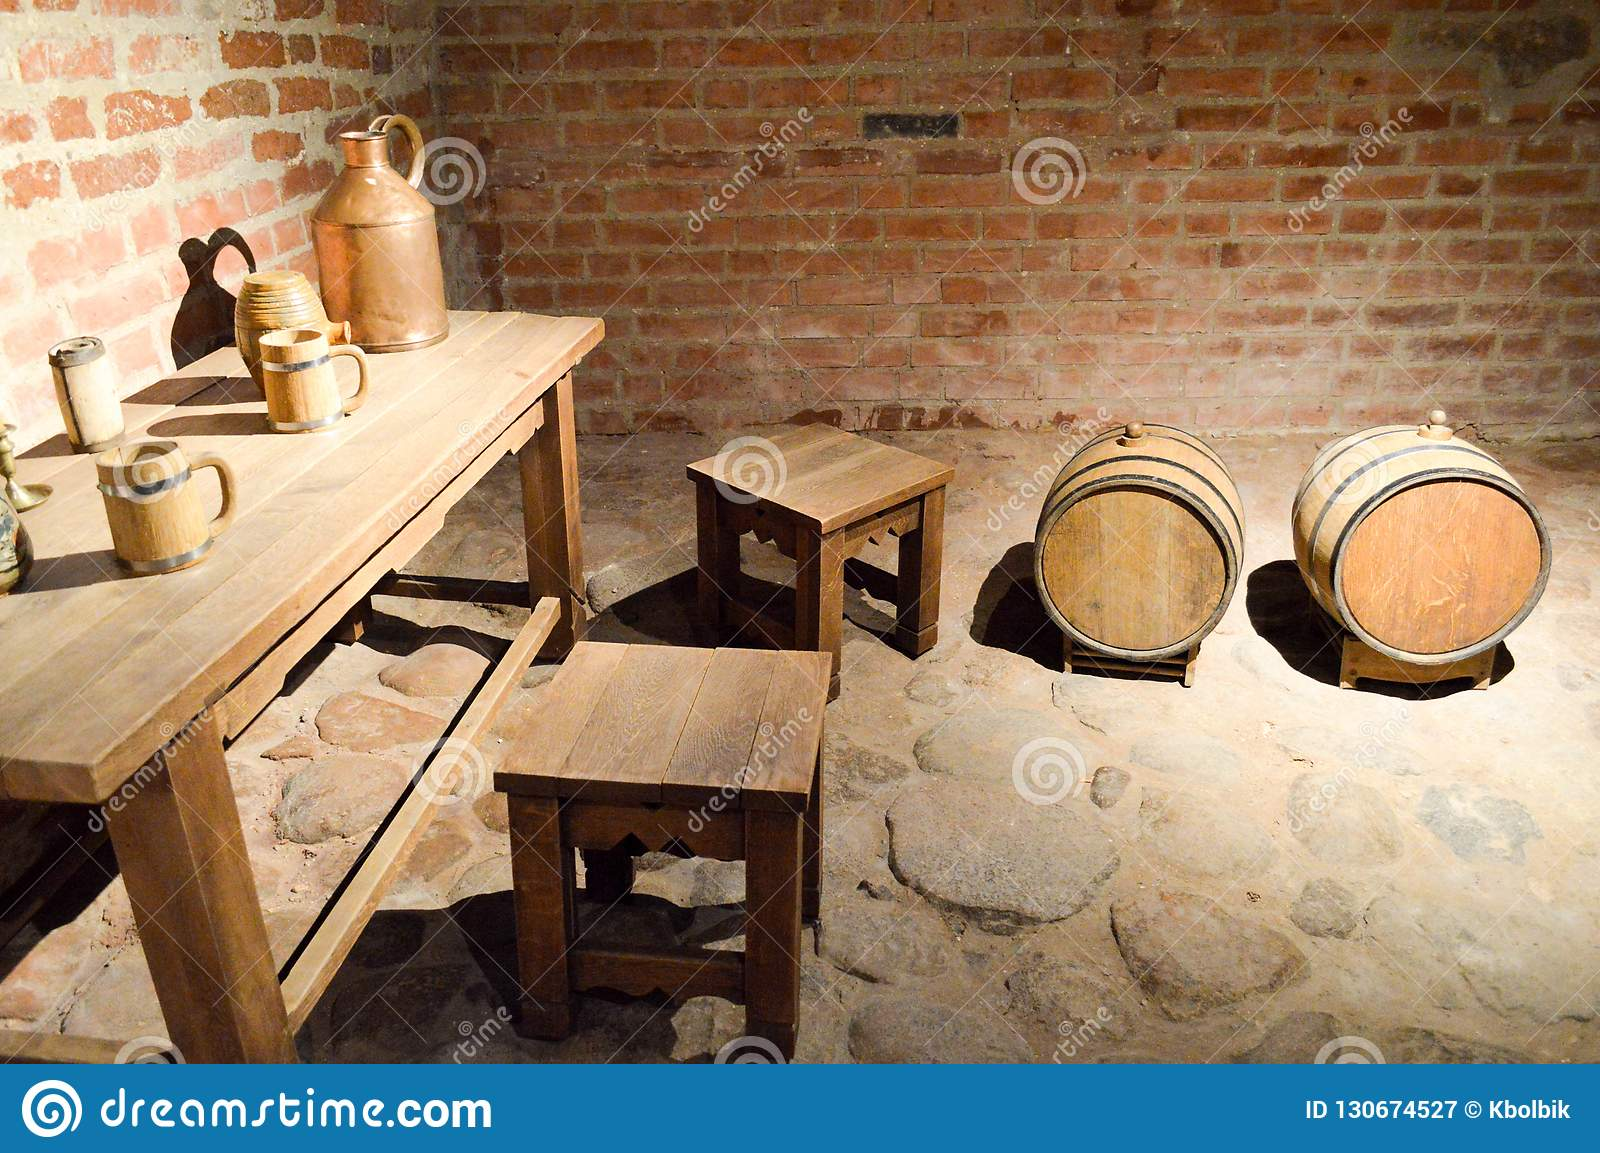 Large Round Wooden Barrels For Beer Wine In The Old Cellar Of The